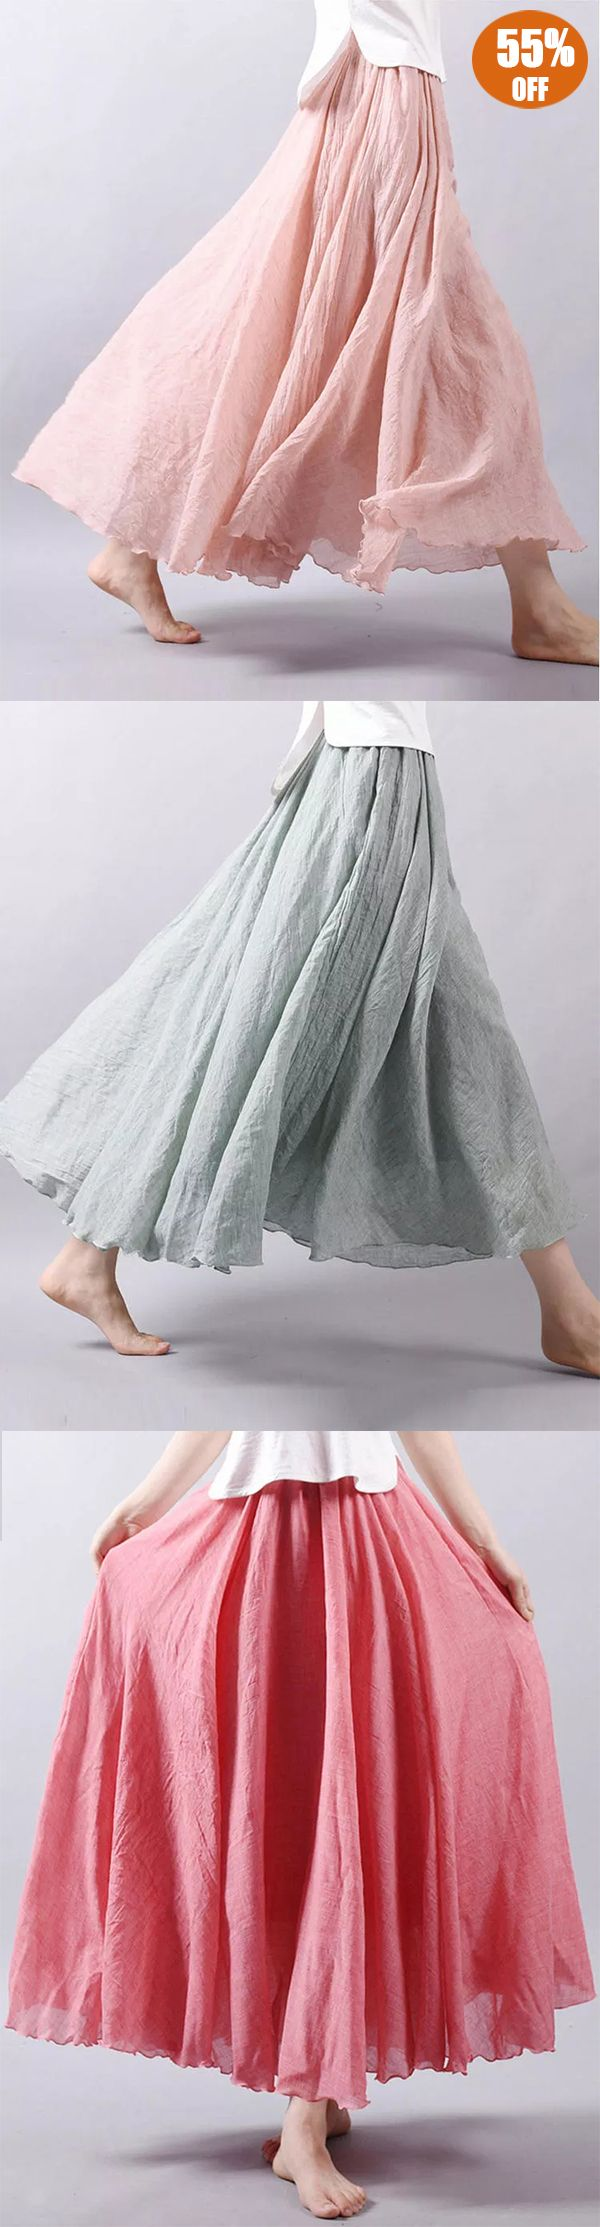 344f252b4f Cotton Elastic Waist Big Swing Hem Long Maxi Skirts | Fashion 2019 ...